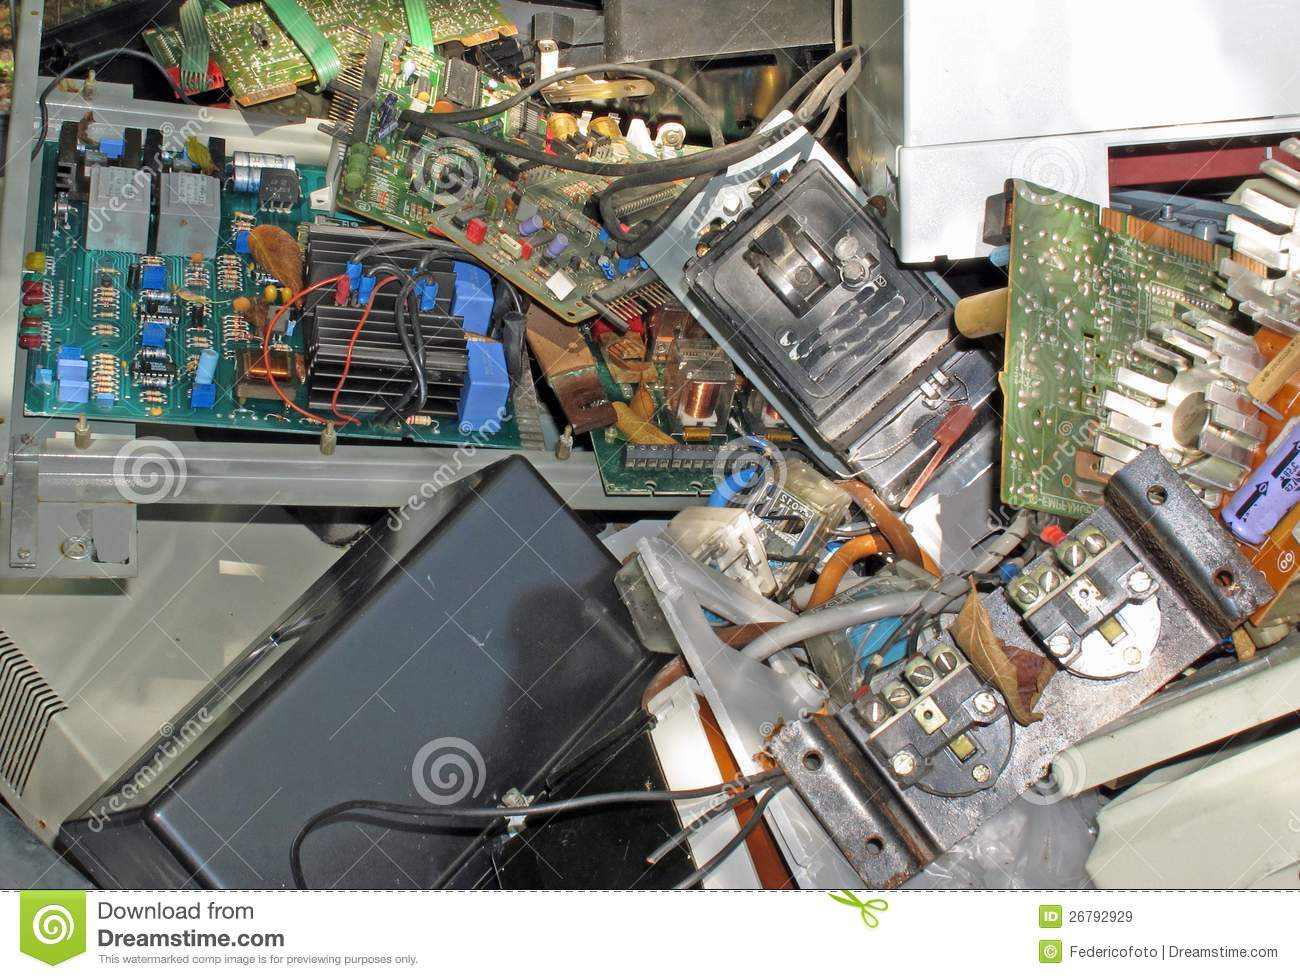 Electronic Equipment And Circuit Stock Image Of Energy Recycle Boards Concept Junk